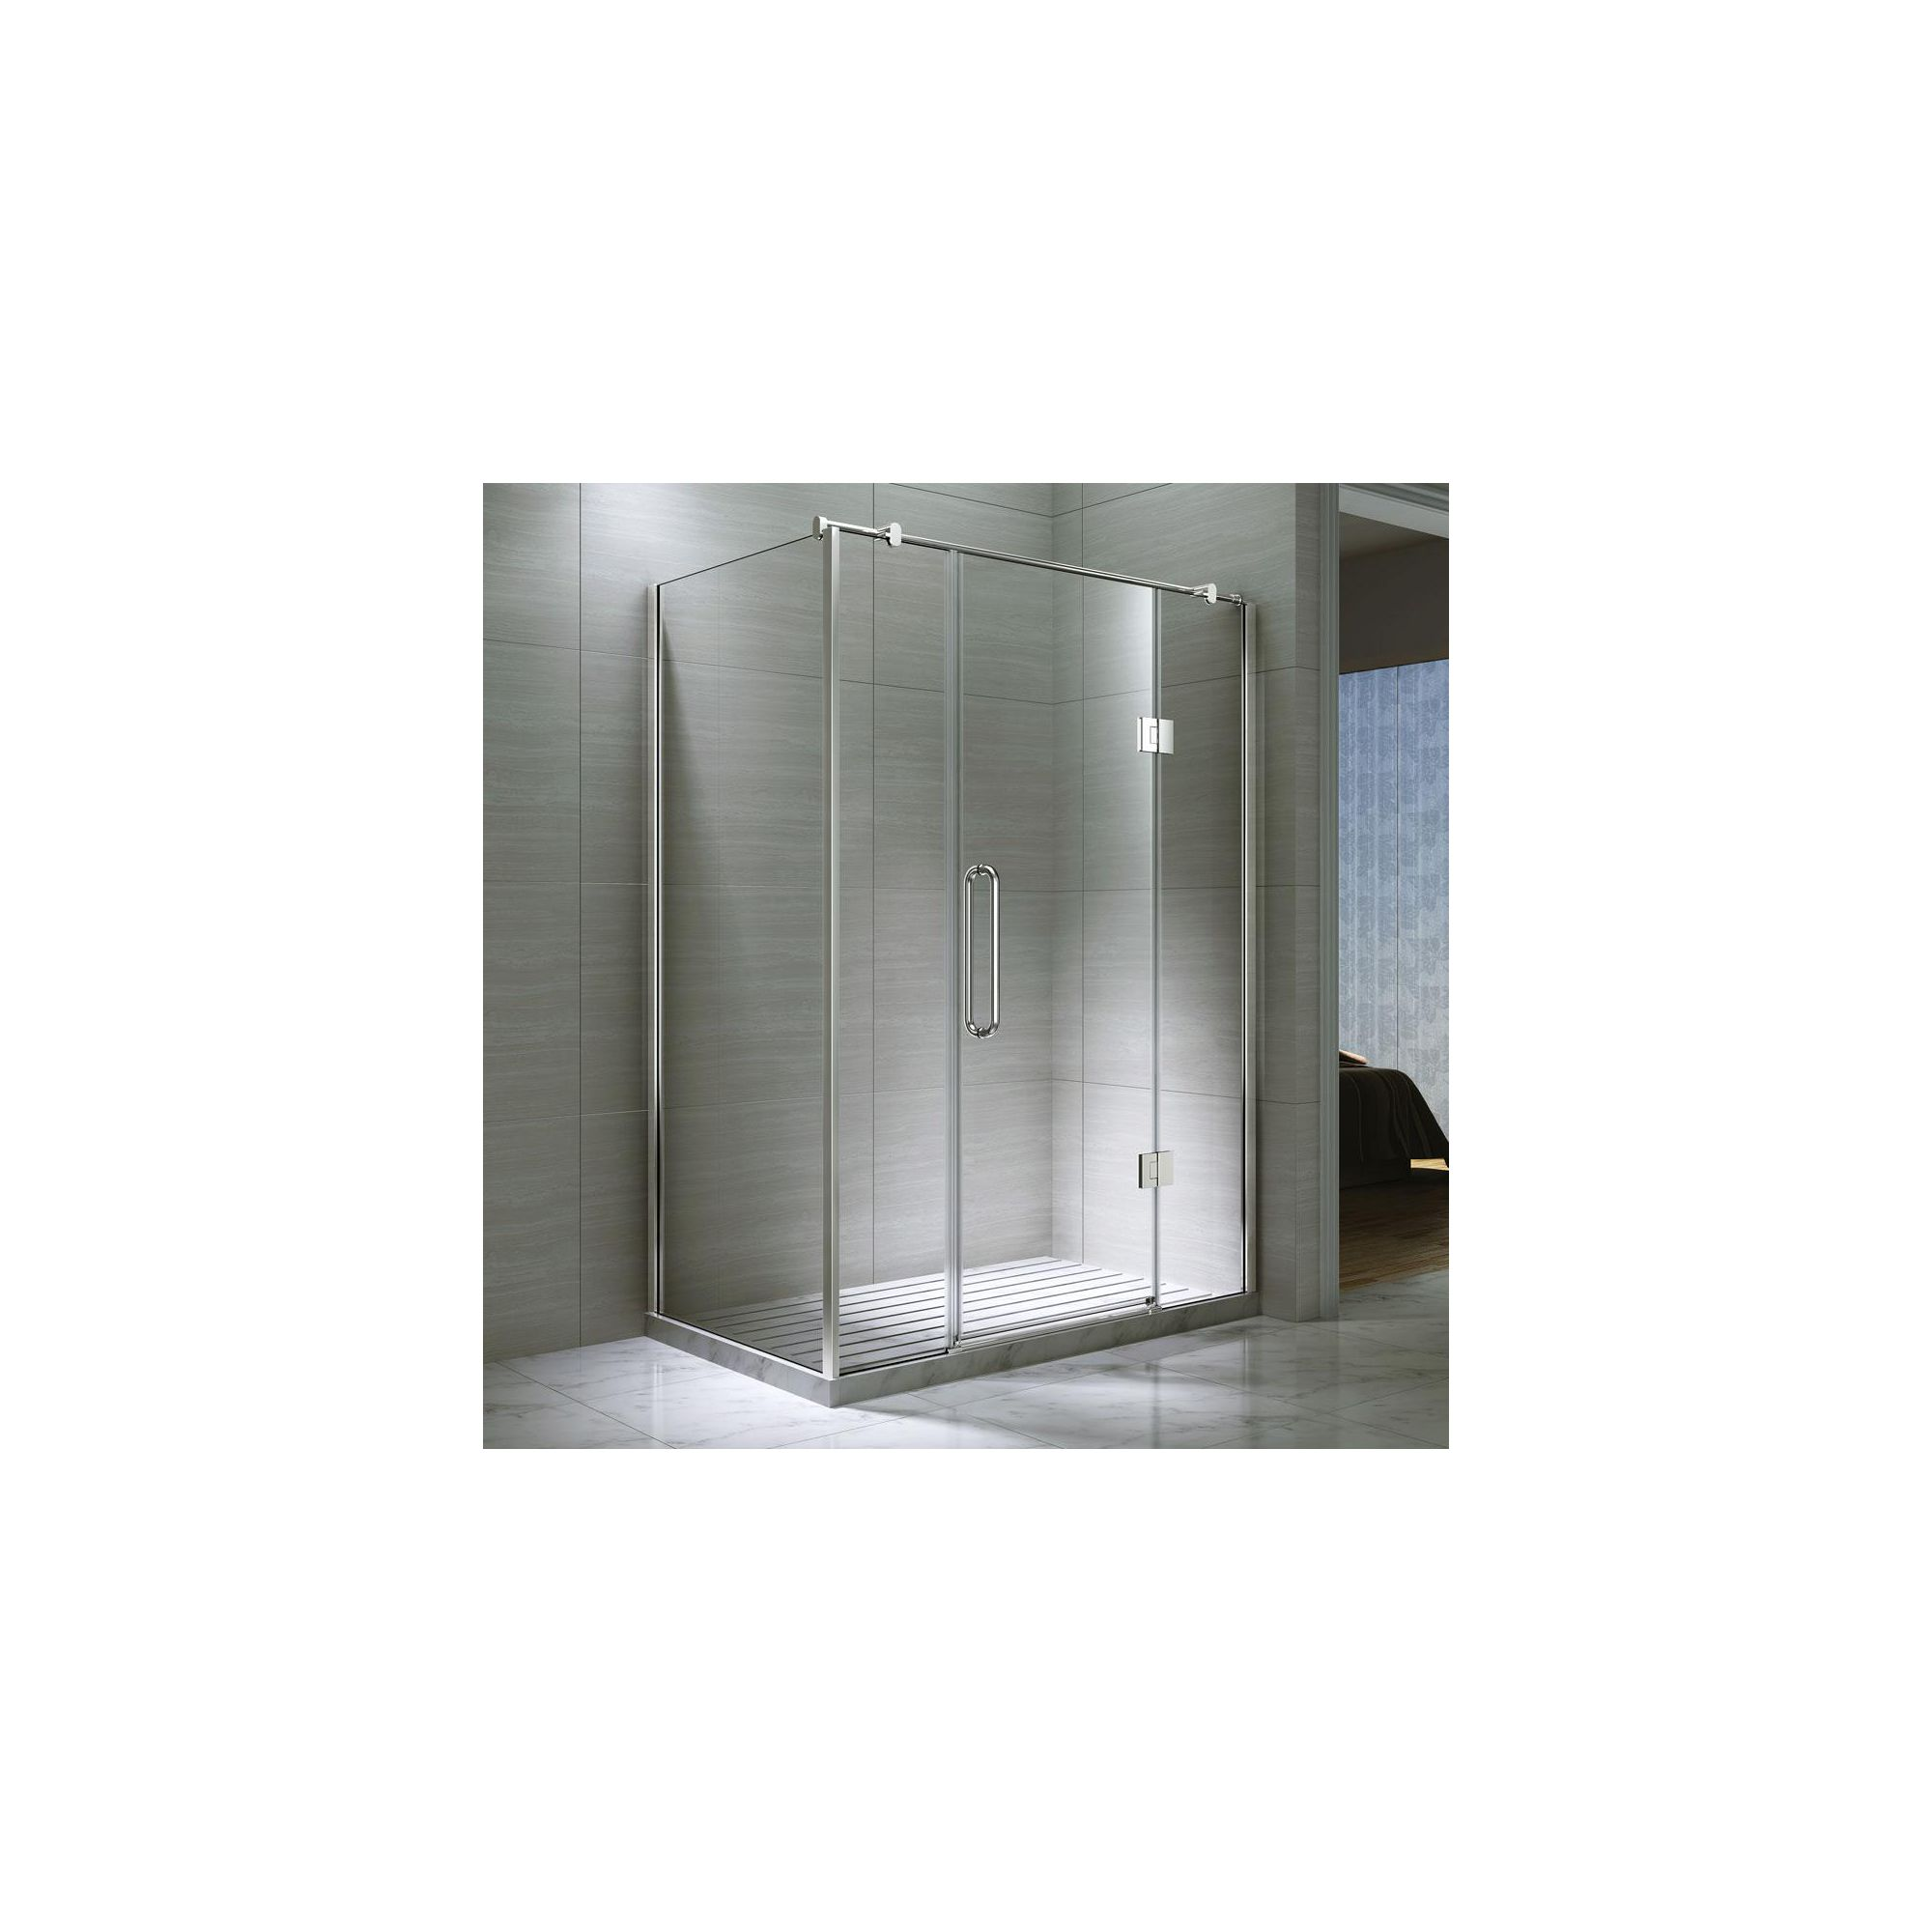 Desire Ten Double Inline Hinged Shower Door with Side Panel, 1600mm x 800mm, Semi-Frameless, 10mm Glass at Tesco Direct